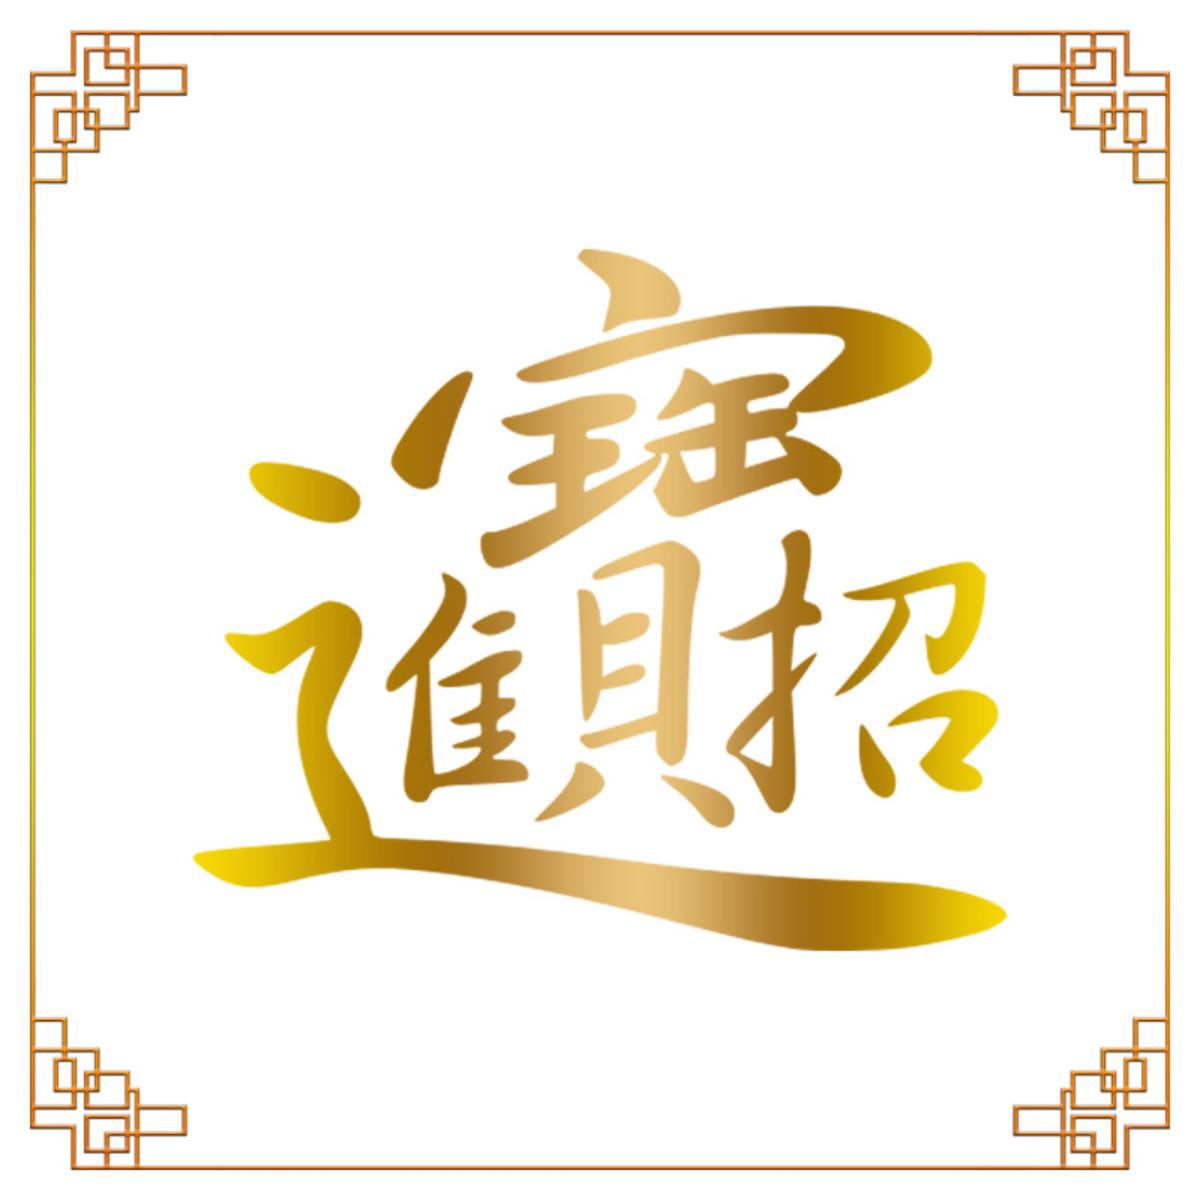 Zhao Cai Jin Bao is an anagram for the beckoning of wealth and treasures.